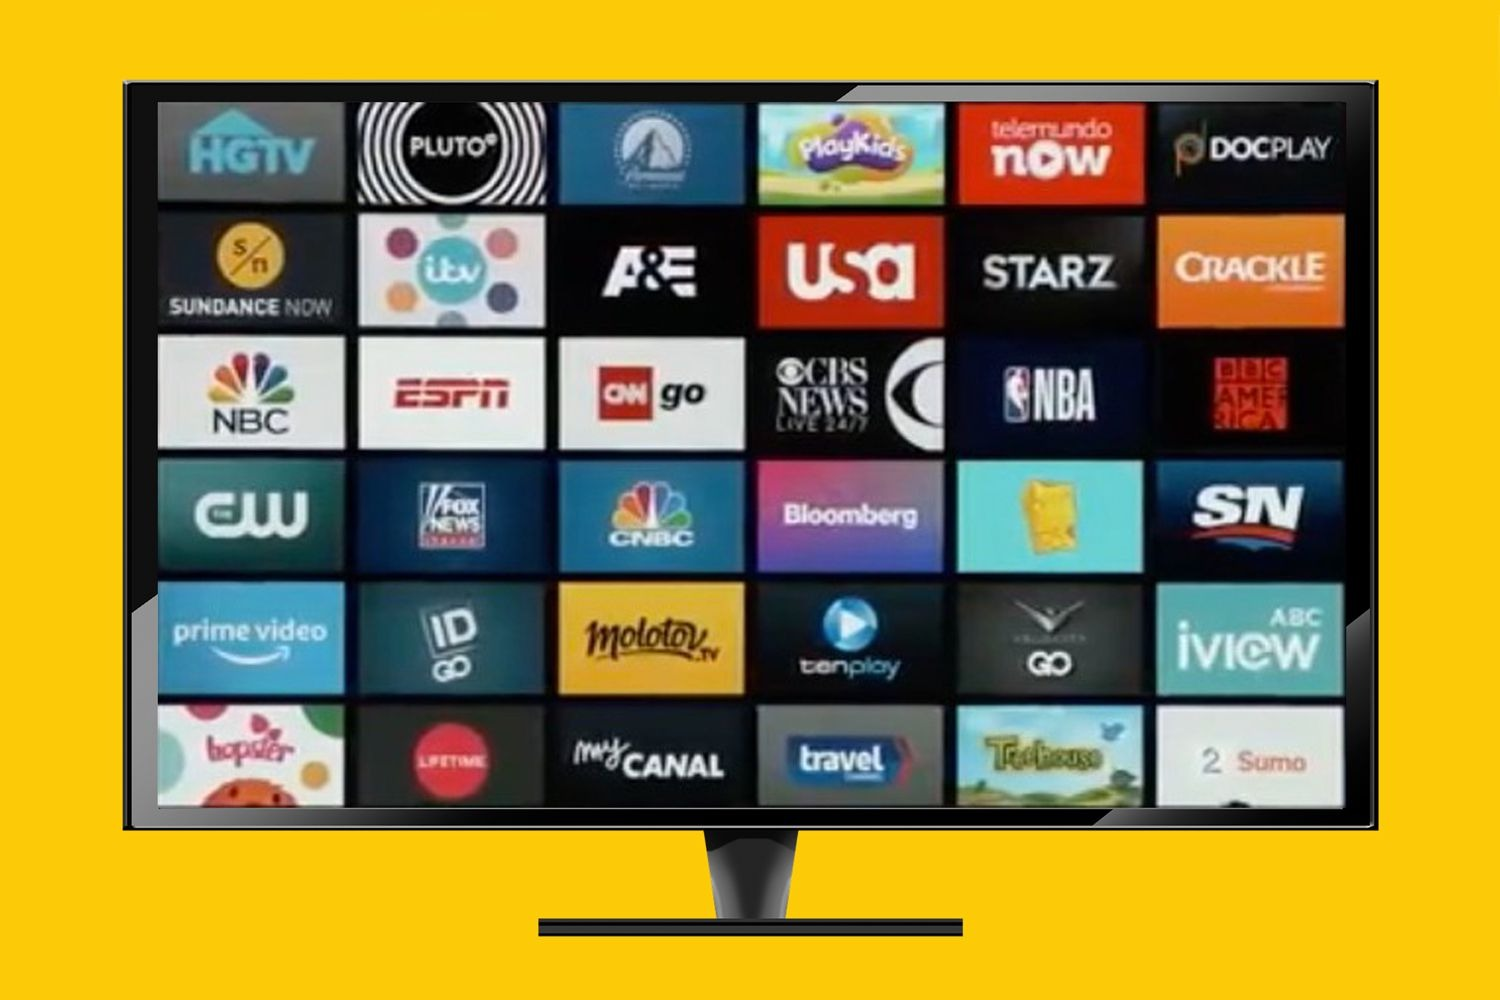 How to change subtitles or languages for videos in the Apple TV app?